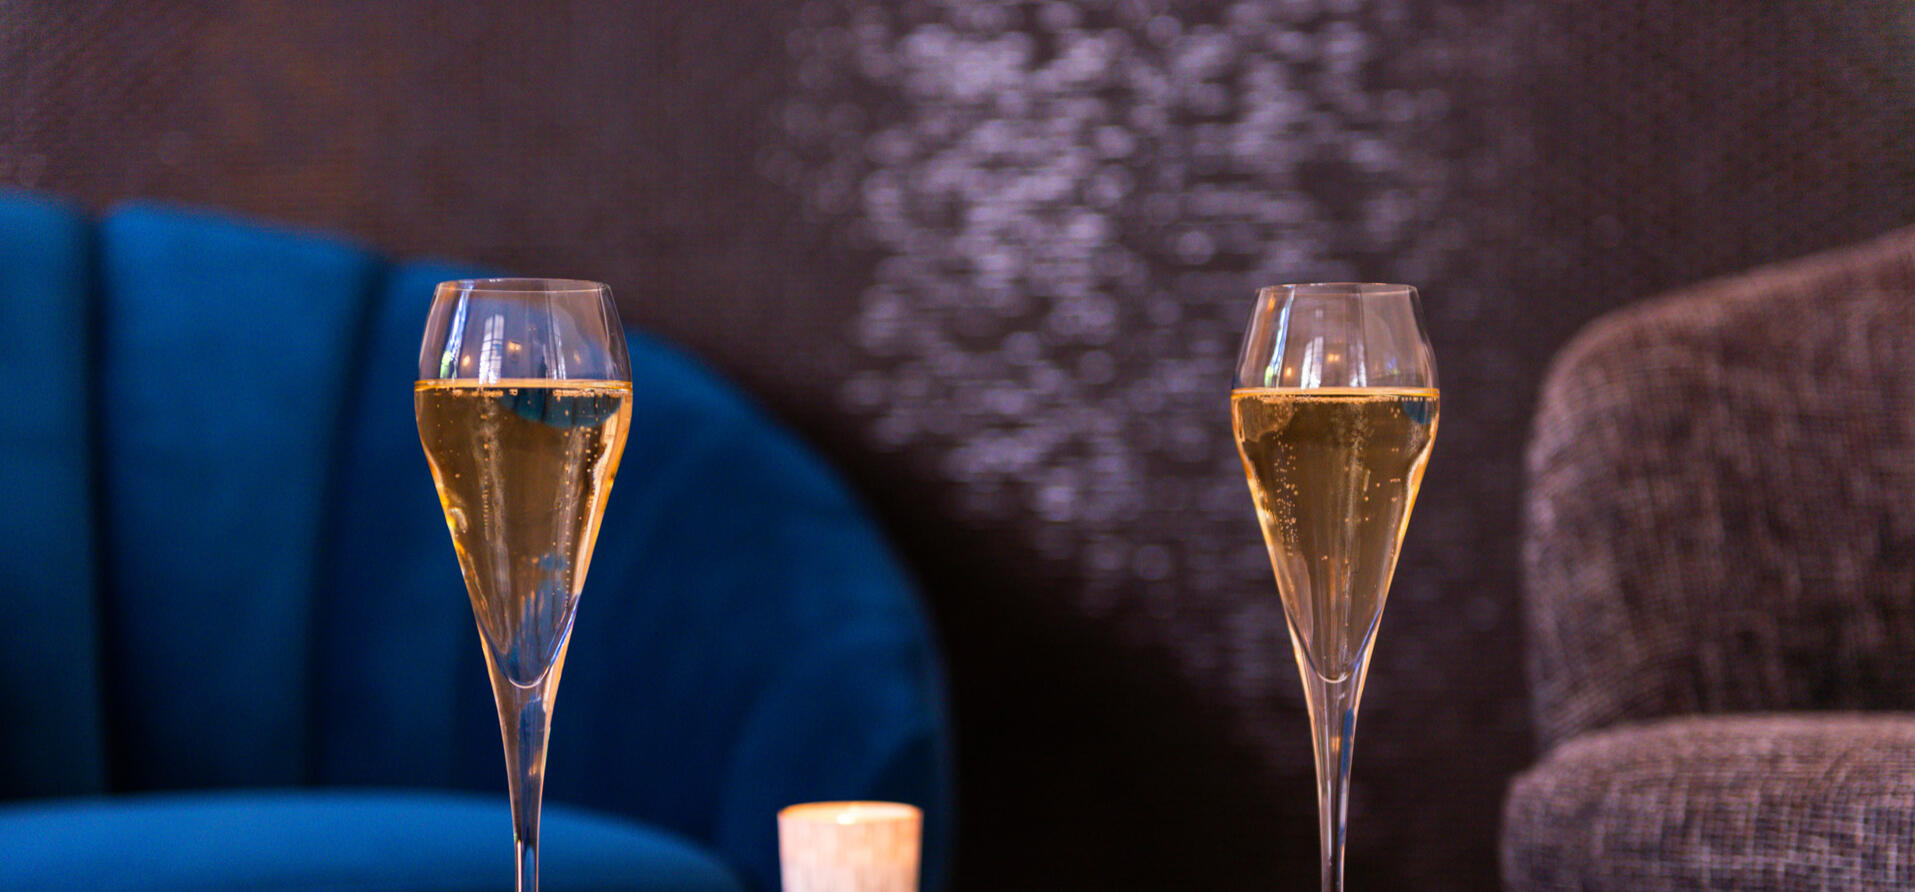 Champagne at Hotel Anne d'Anjou in Saumur, France